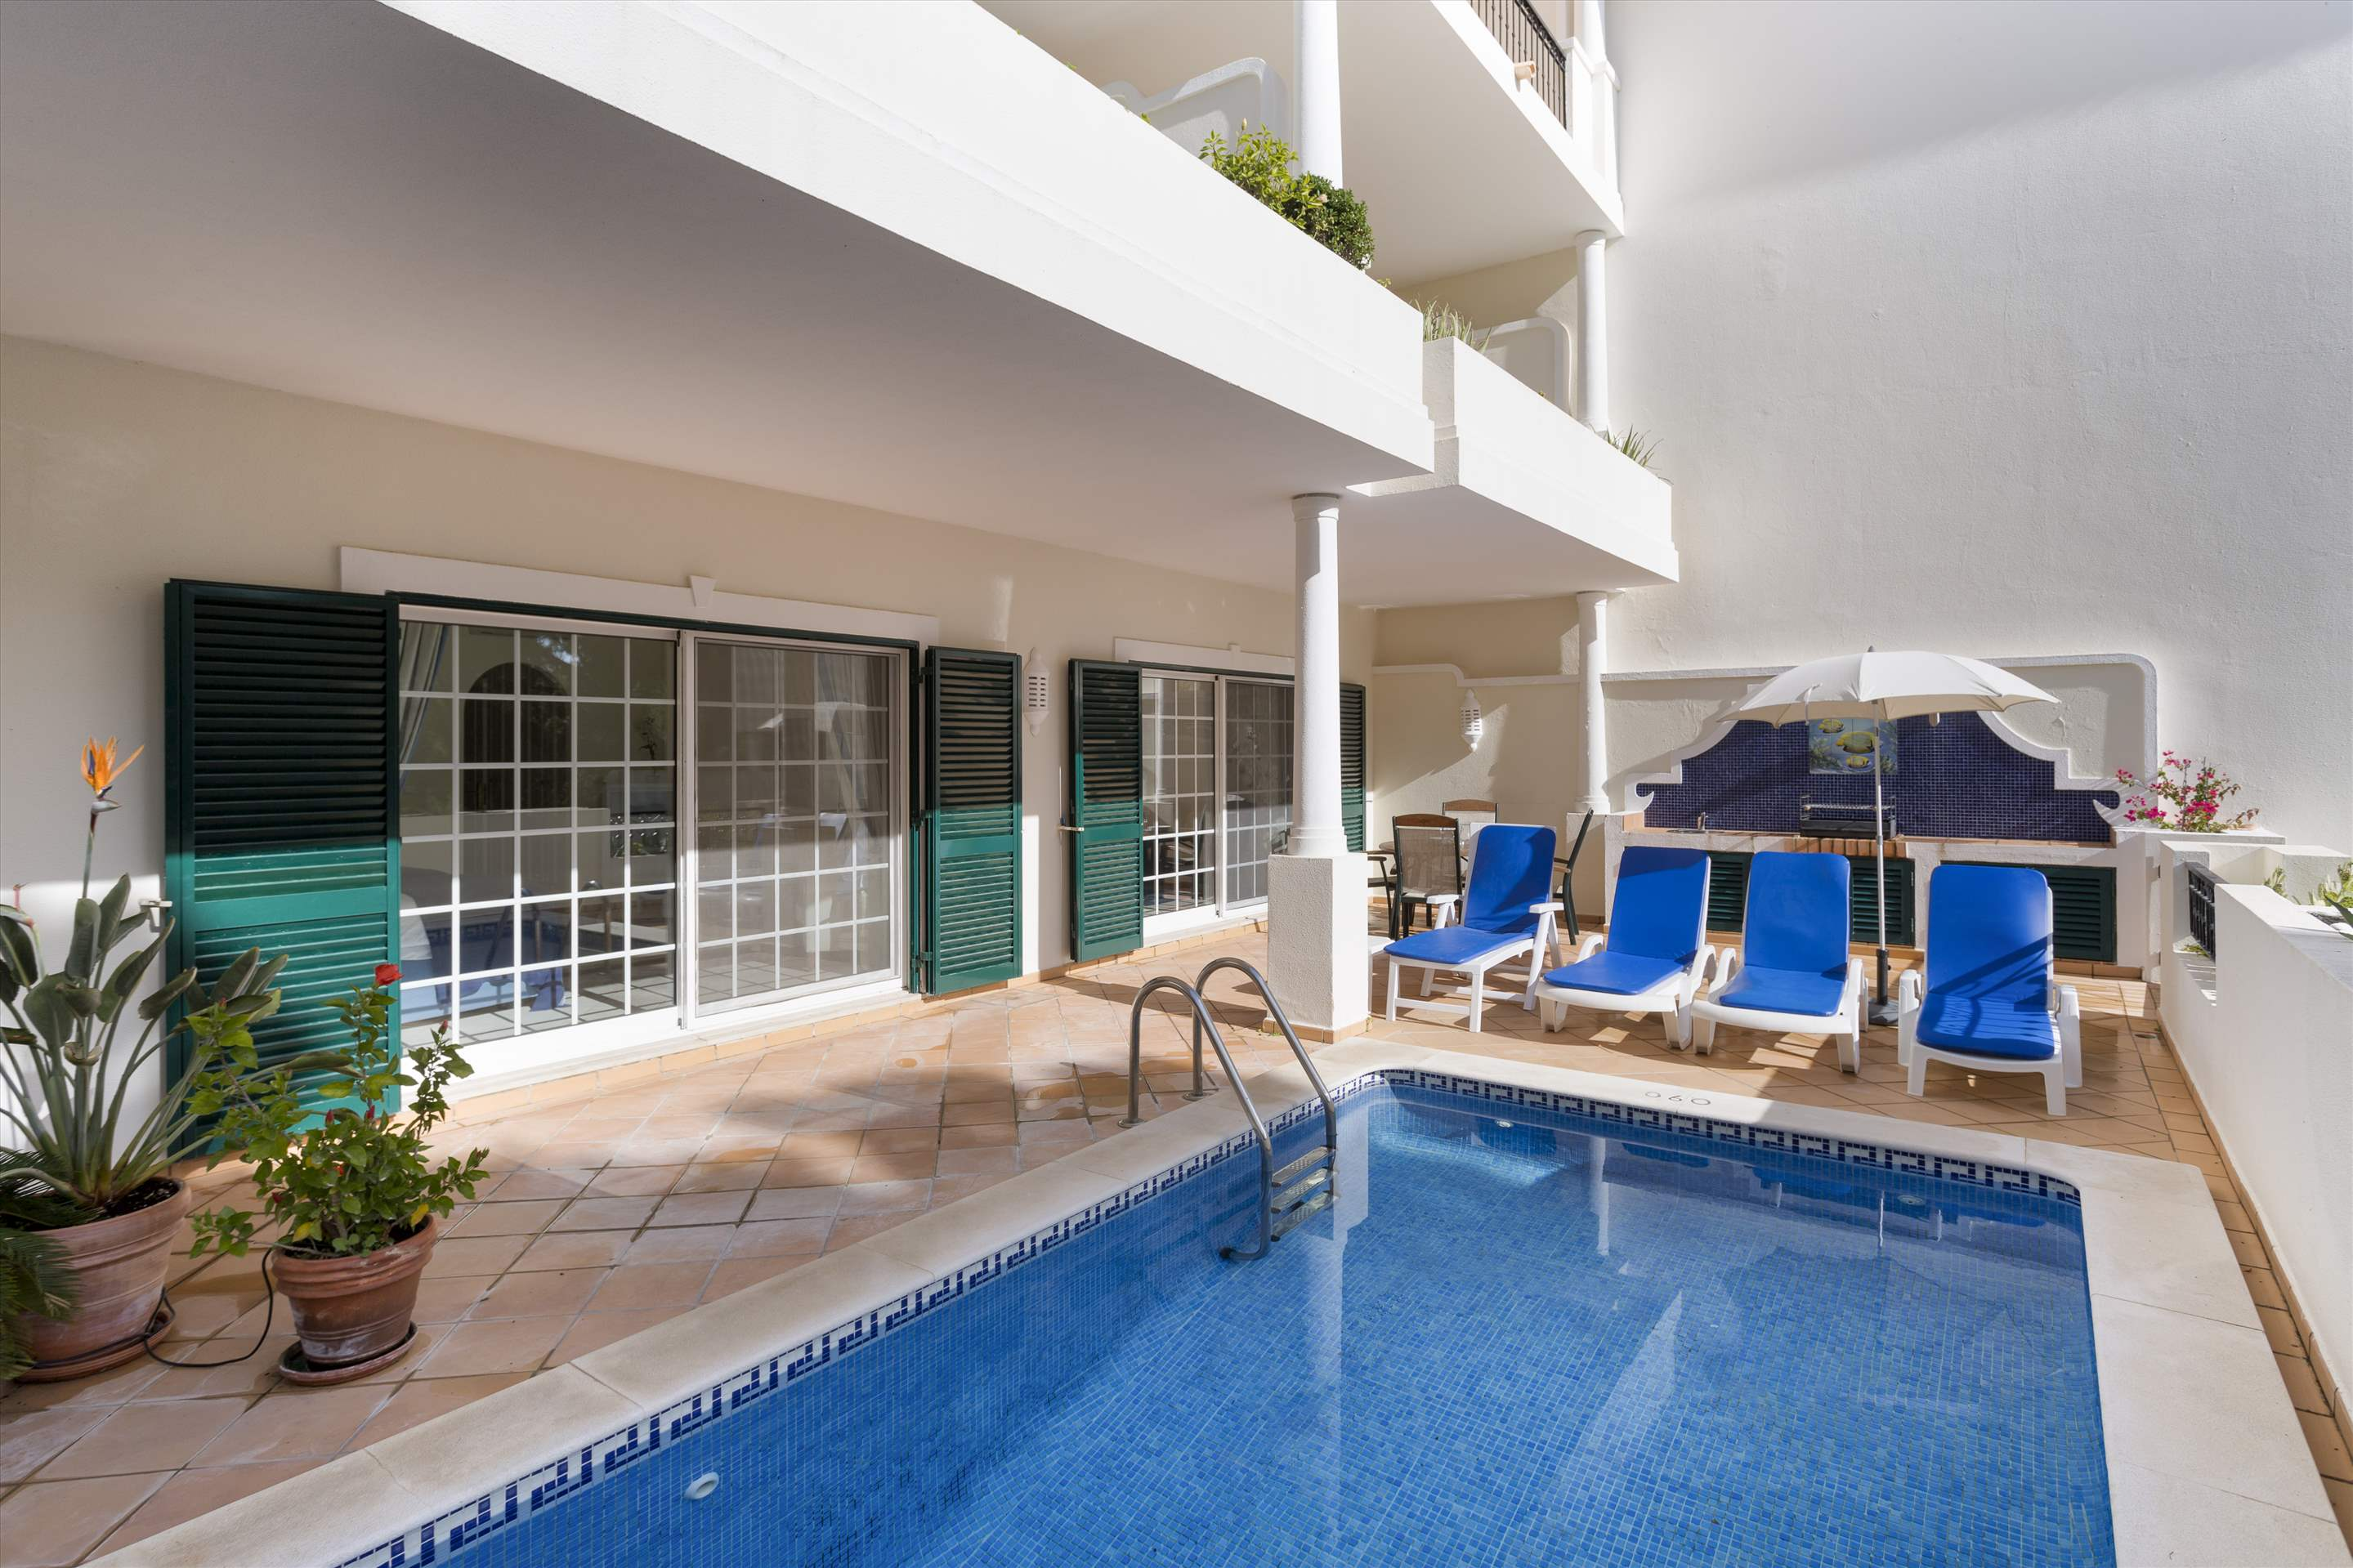 Apt 983A, 2 bedroom apartment in Vale do Lobo, Algarve